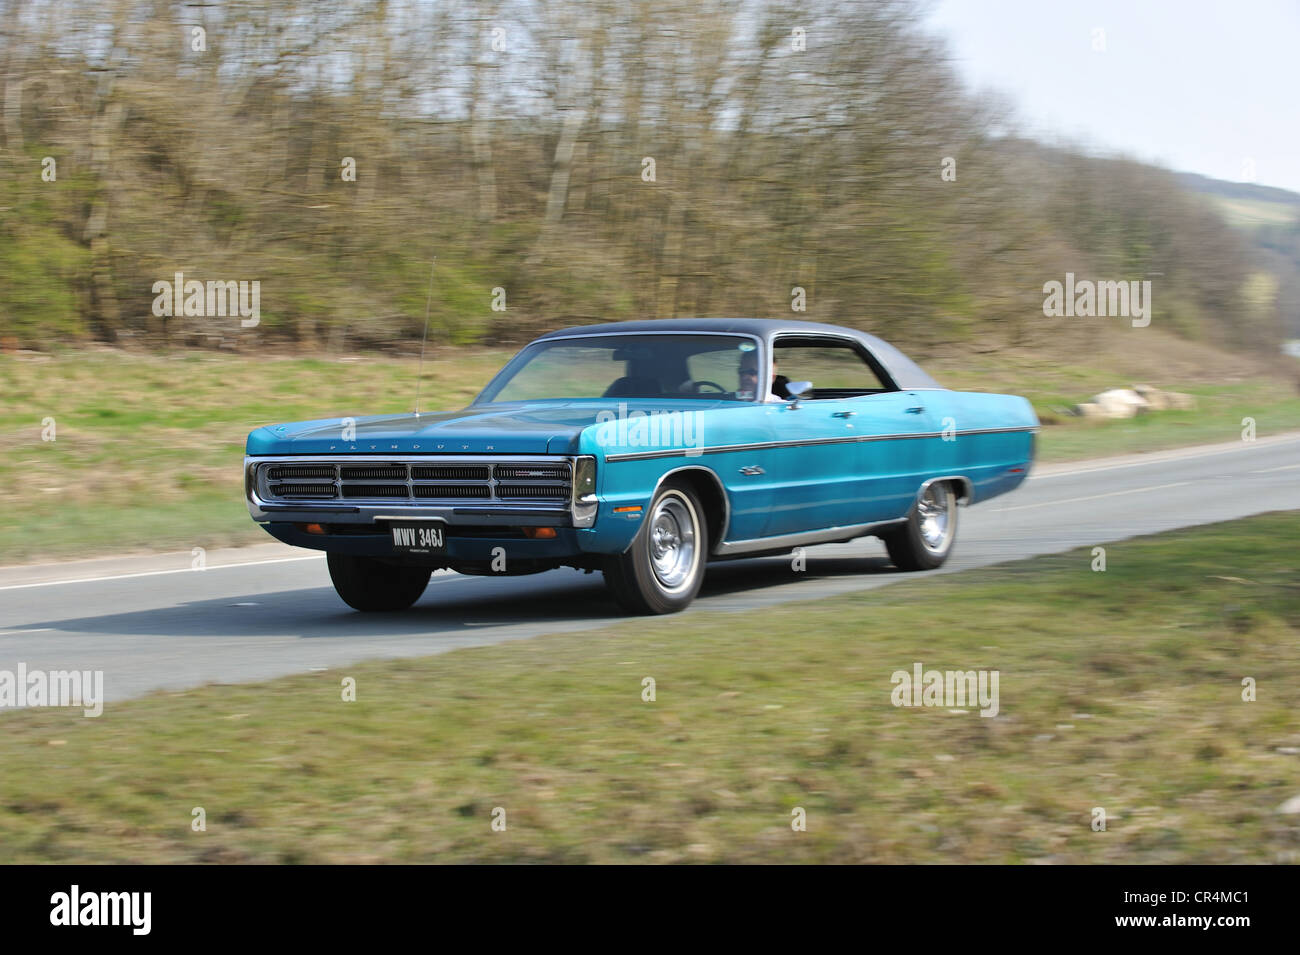 1971 Plymouth Sport Fury Full Size American Performance